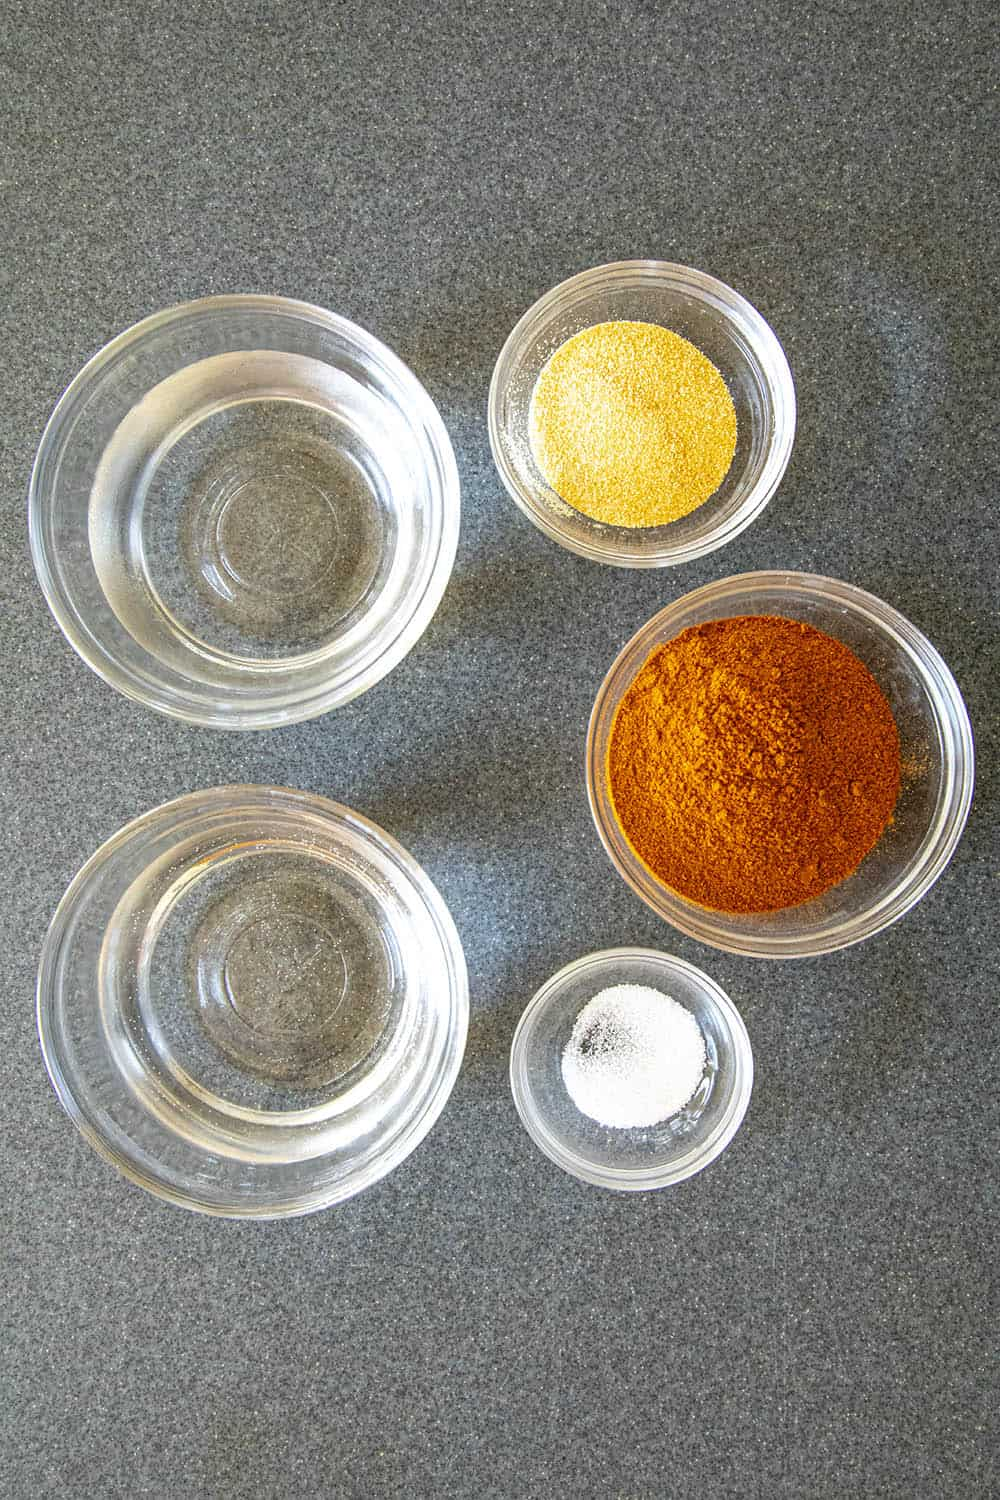 """Ingredient with hot sauce """"width ="""" 1000 """"height ="""" 1500 """"srcset ="""" https://www.chilipeppermadness.com/wp-content/uploads/2020/04/Hot-Sauce-From-Powder-INGREDIENTS.jpg 1000w , https://www.chilipeppermadness.com/wp-content/uploads/2020/04/Hot-Sauce-From-Powder-INGREDIENTS-500x750.jpg 500w, https://www.chilipeppermadness.com/wp-content/ uploads /2020/04/Hot-Sauce-From-Powder-INGREDIENTS-683x1024.jpg 683w, https://www.chilipeppermadness.com/wp-content/uploads/2020/04/Hot-Sauce-From-Powder-INGREDIENTS - 100x150.jpg 100w, https://www.chilipeppermadness.com/wp-content/uploads/2020/04/Hot-Sauce-From-Powder-INGREDIENTS-768x1152.jpg 768w """"sizes ="""" (max-width: 1000px ) 100vw, 1000px"""